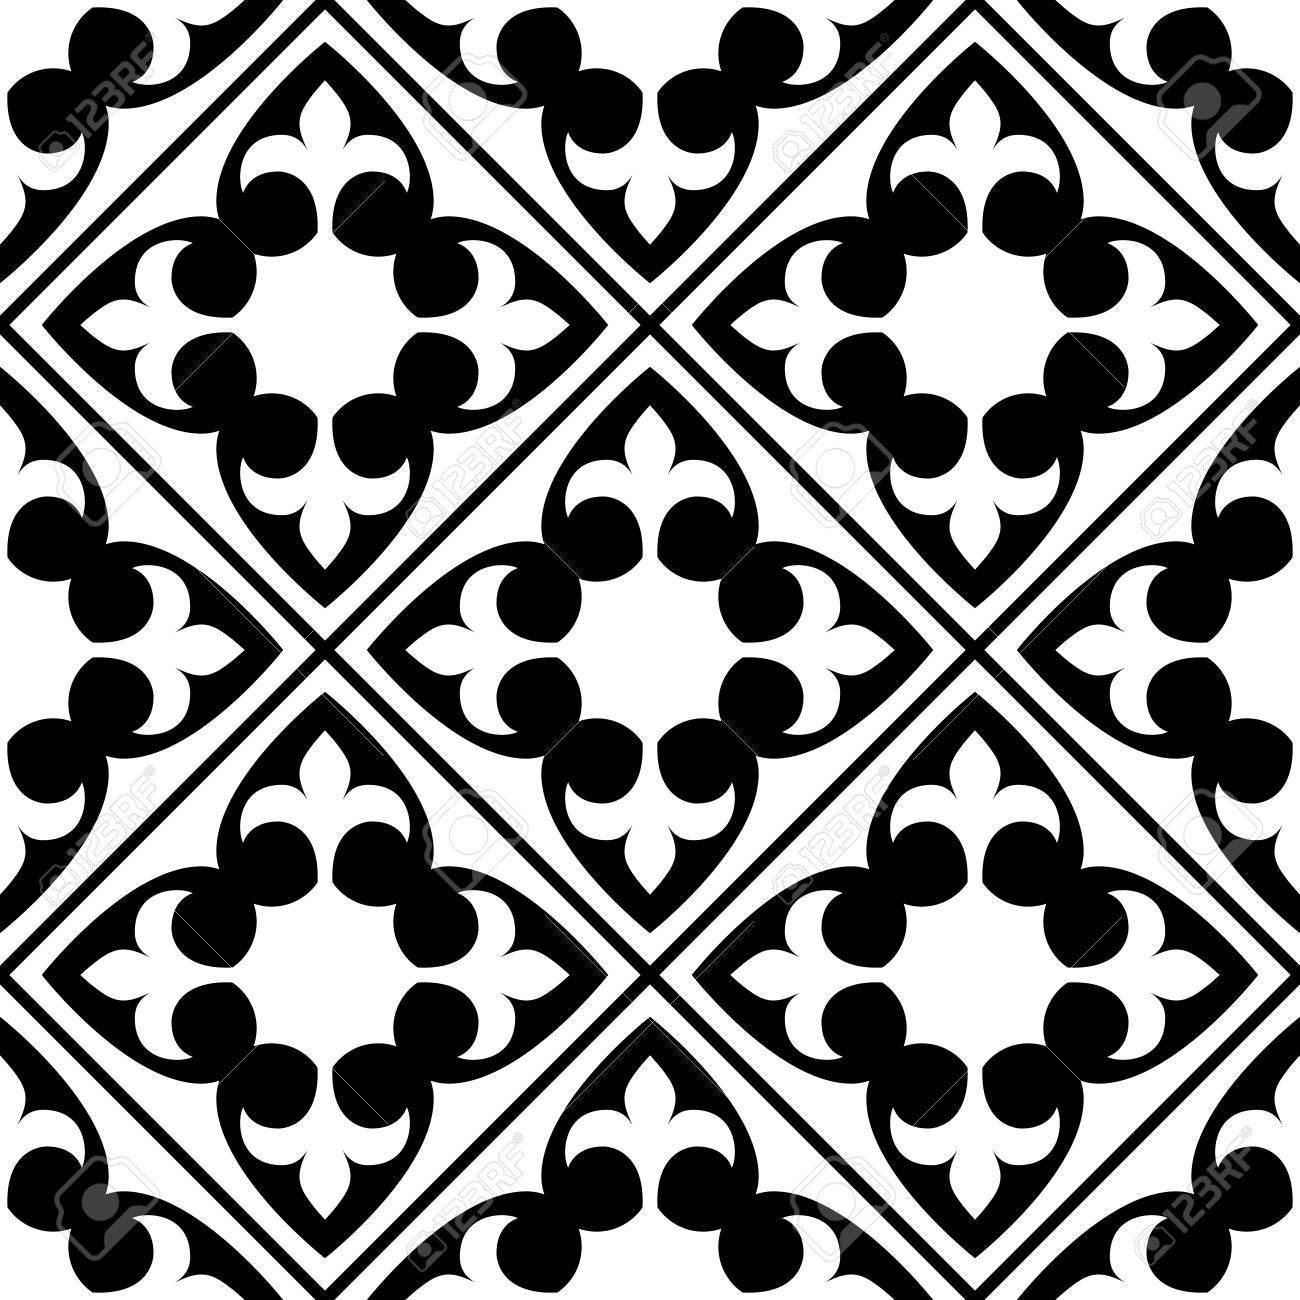 spanish and portuguese tile pattern moroccan tiles design seamless